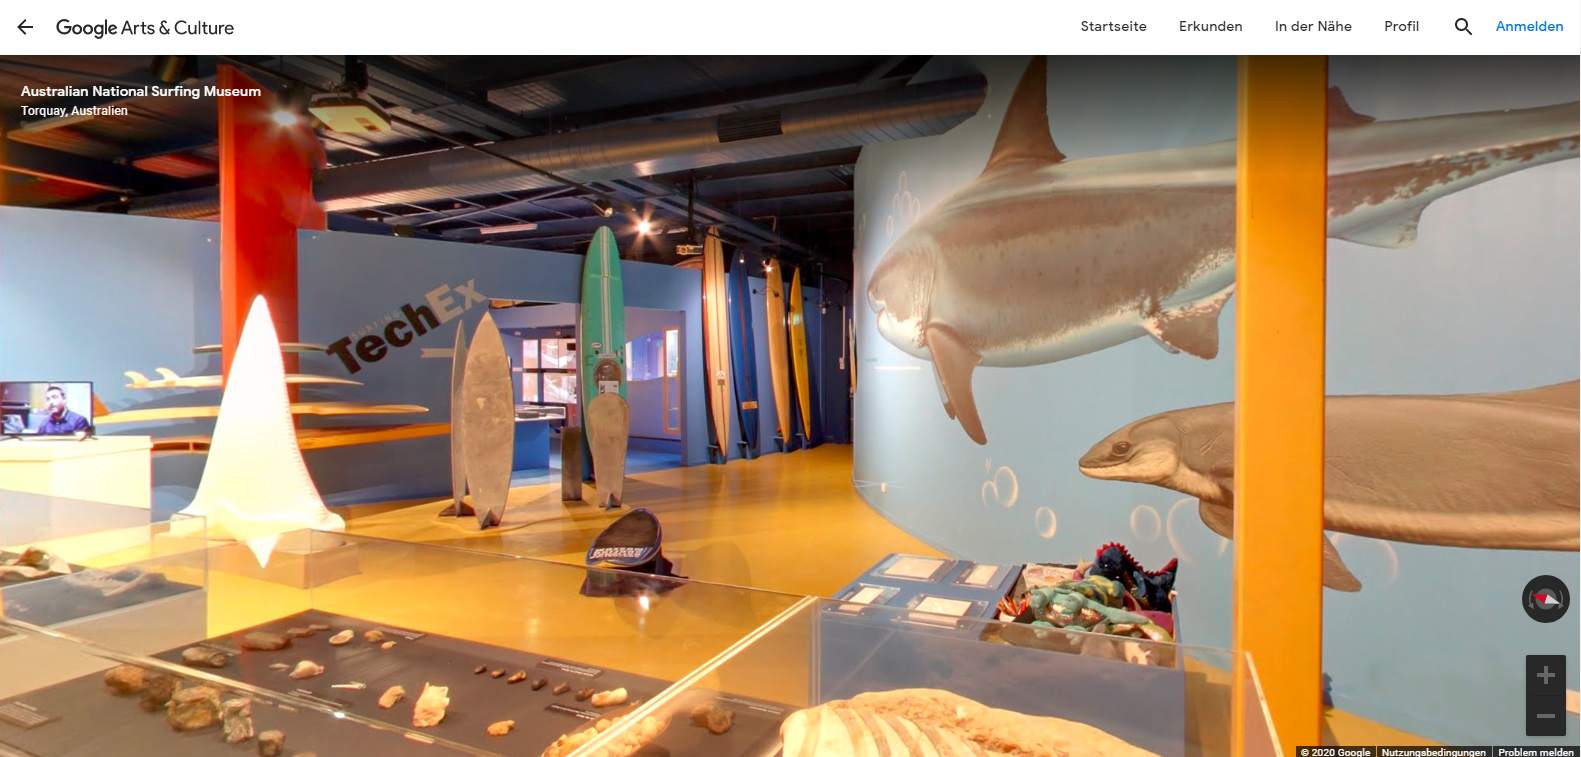 Google Arts and Culture - Surfmuseum Australien